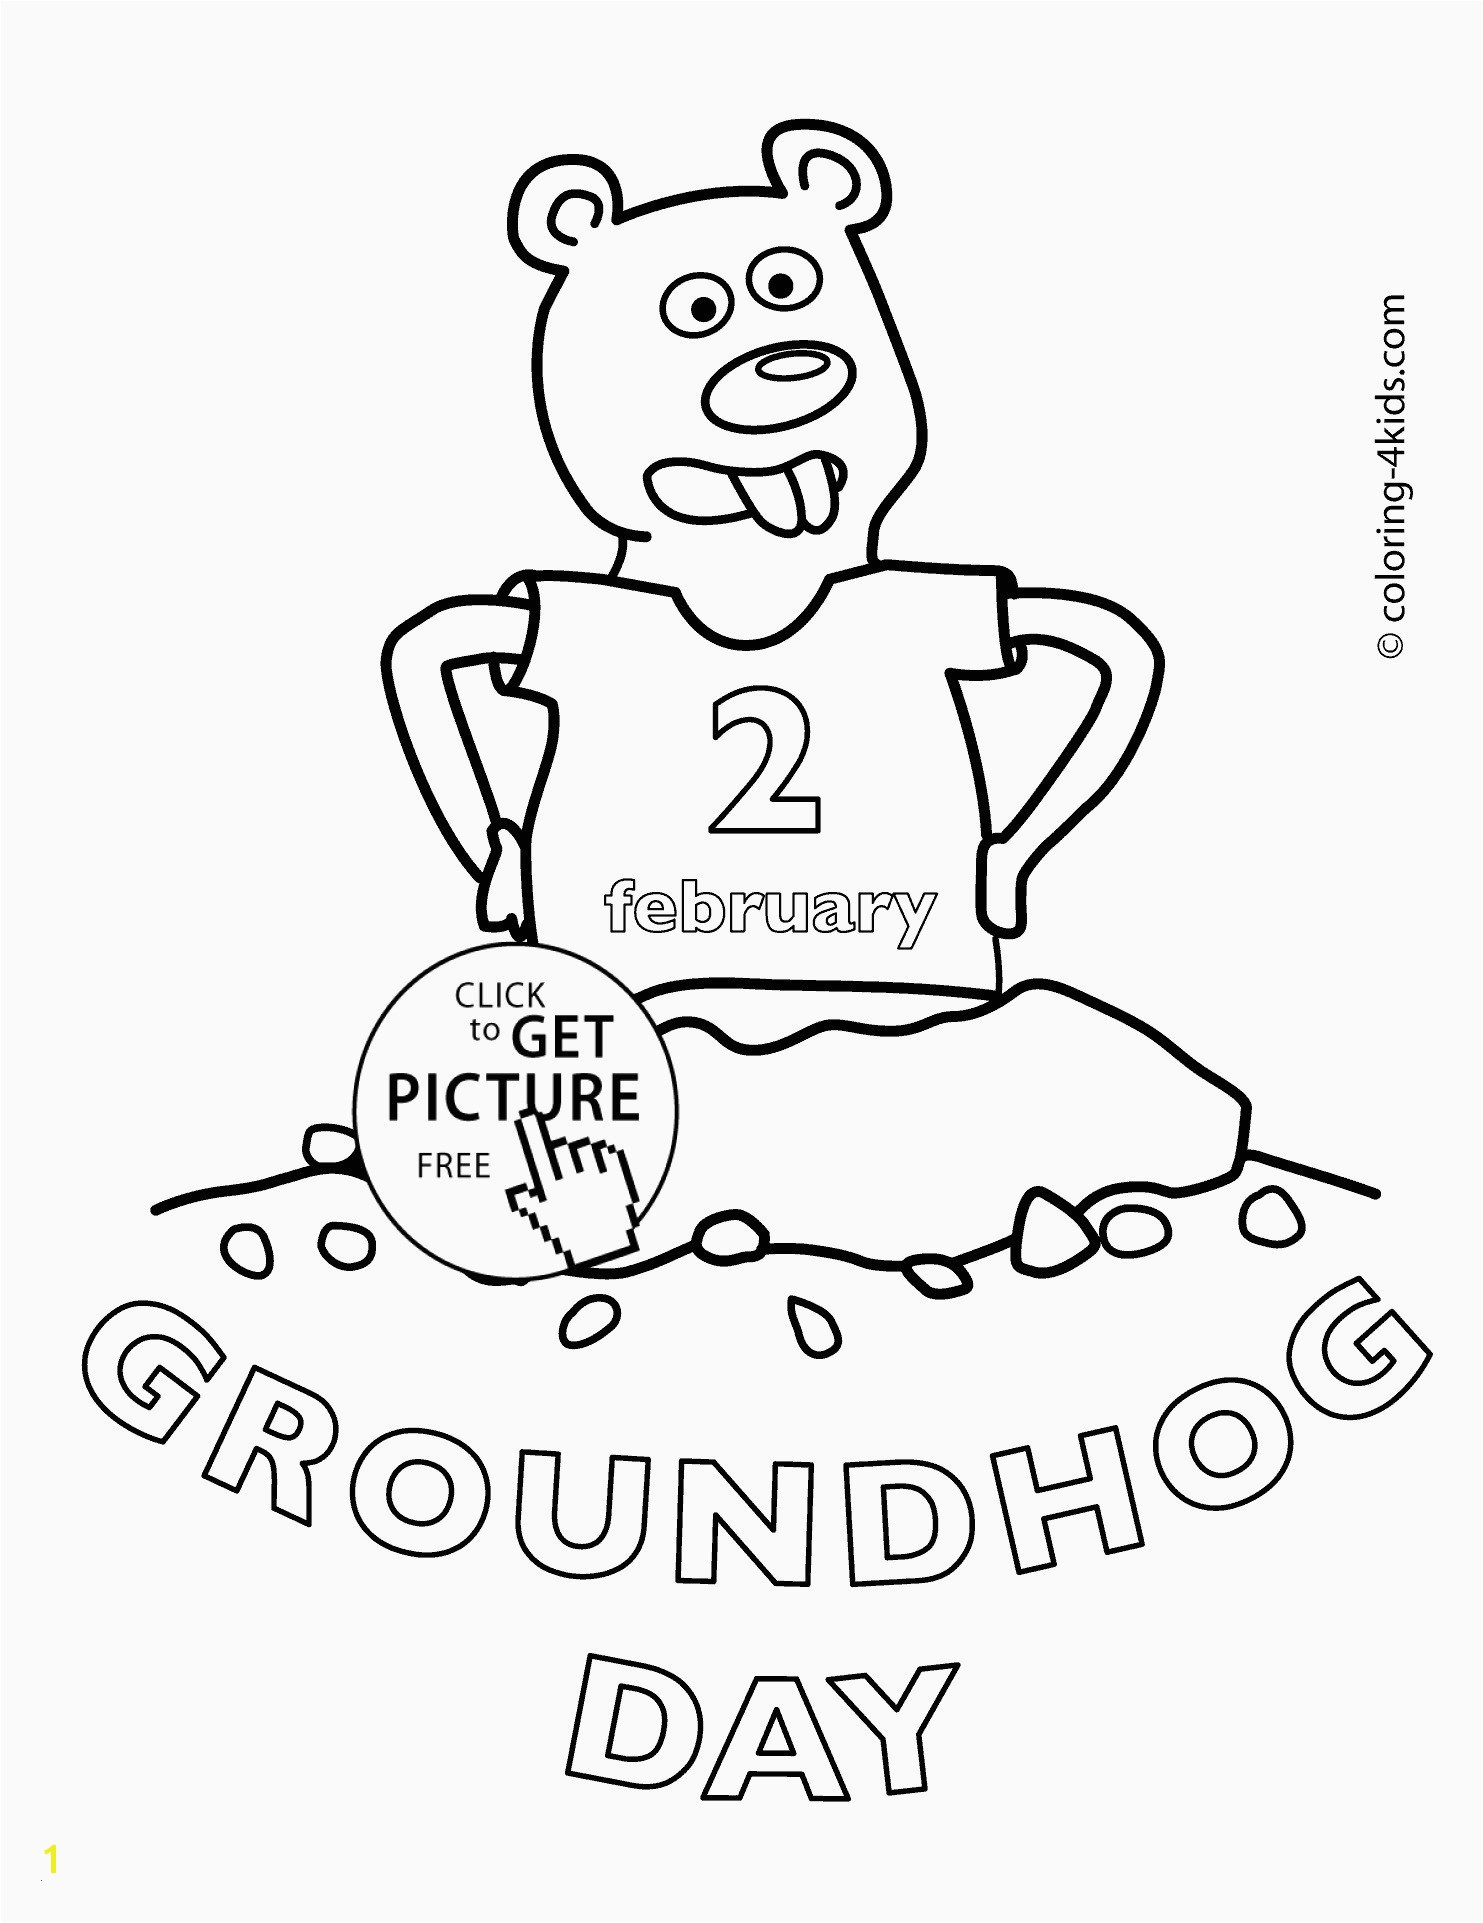 Free Printable Valentines Coloring Pages Valentines Printable Coloring Pages Mickeycarrollmunchkin